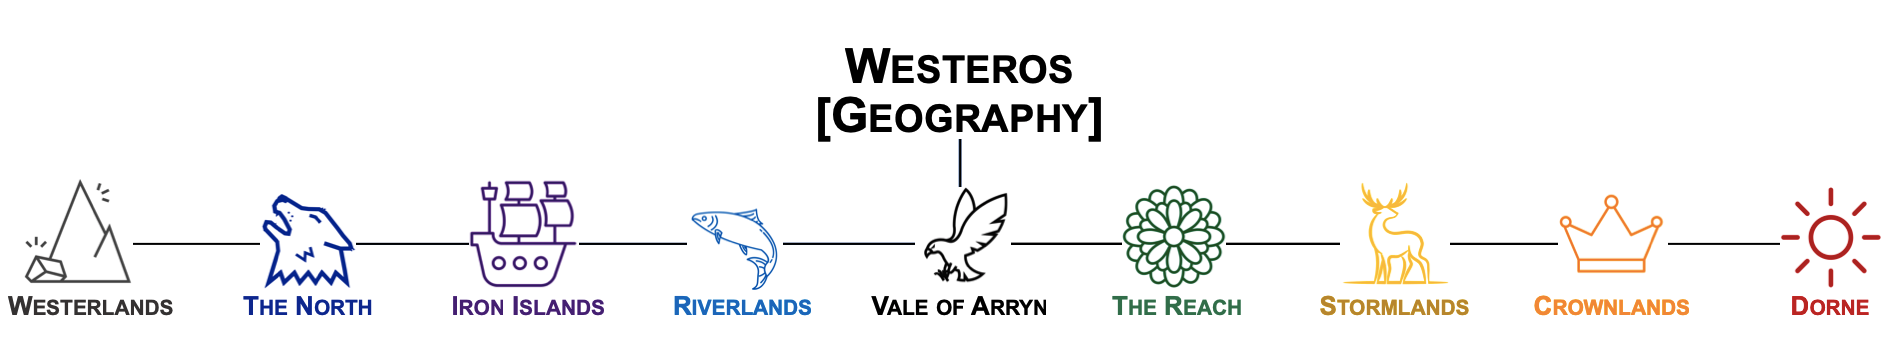 Visual representation of the GOT Westeros taxonomy